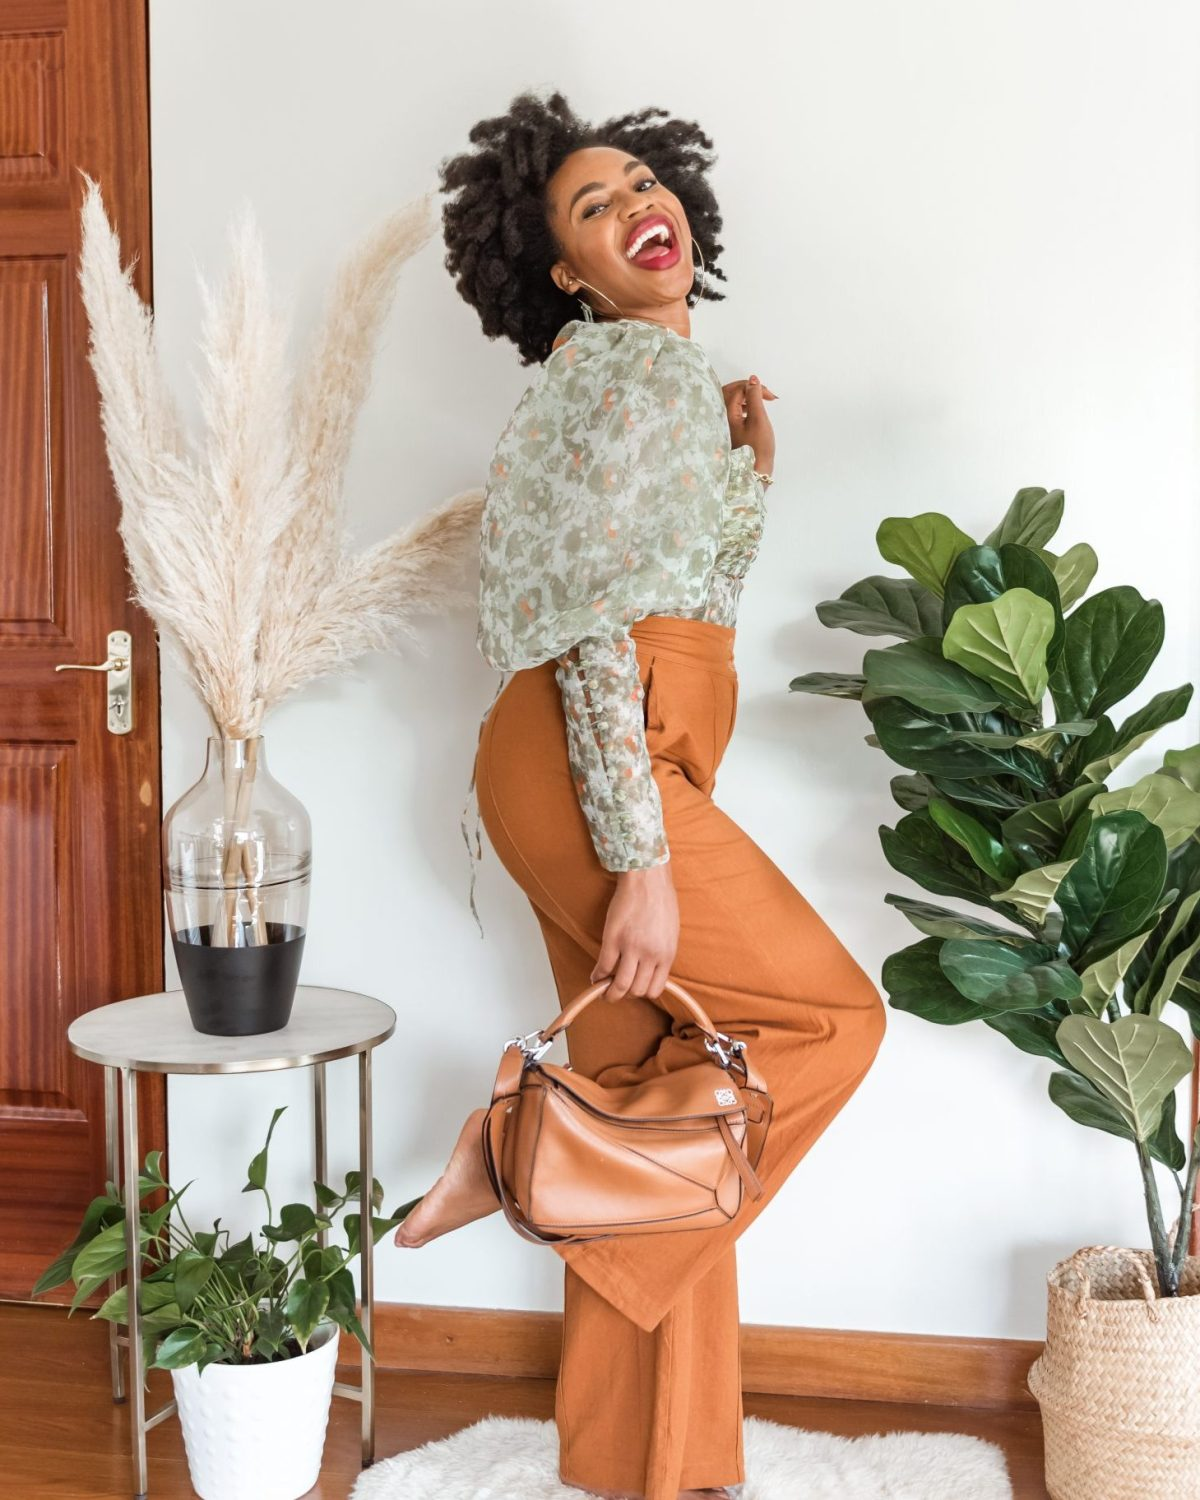 Ijeoma Kola posing and laughing - Inspirational Instagram accounts